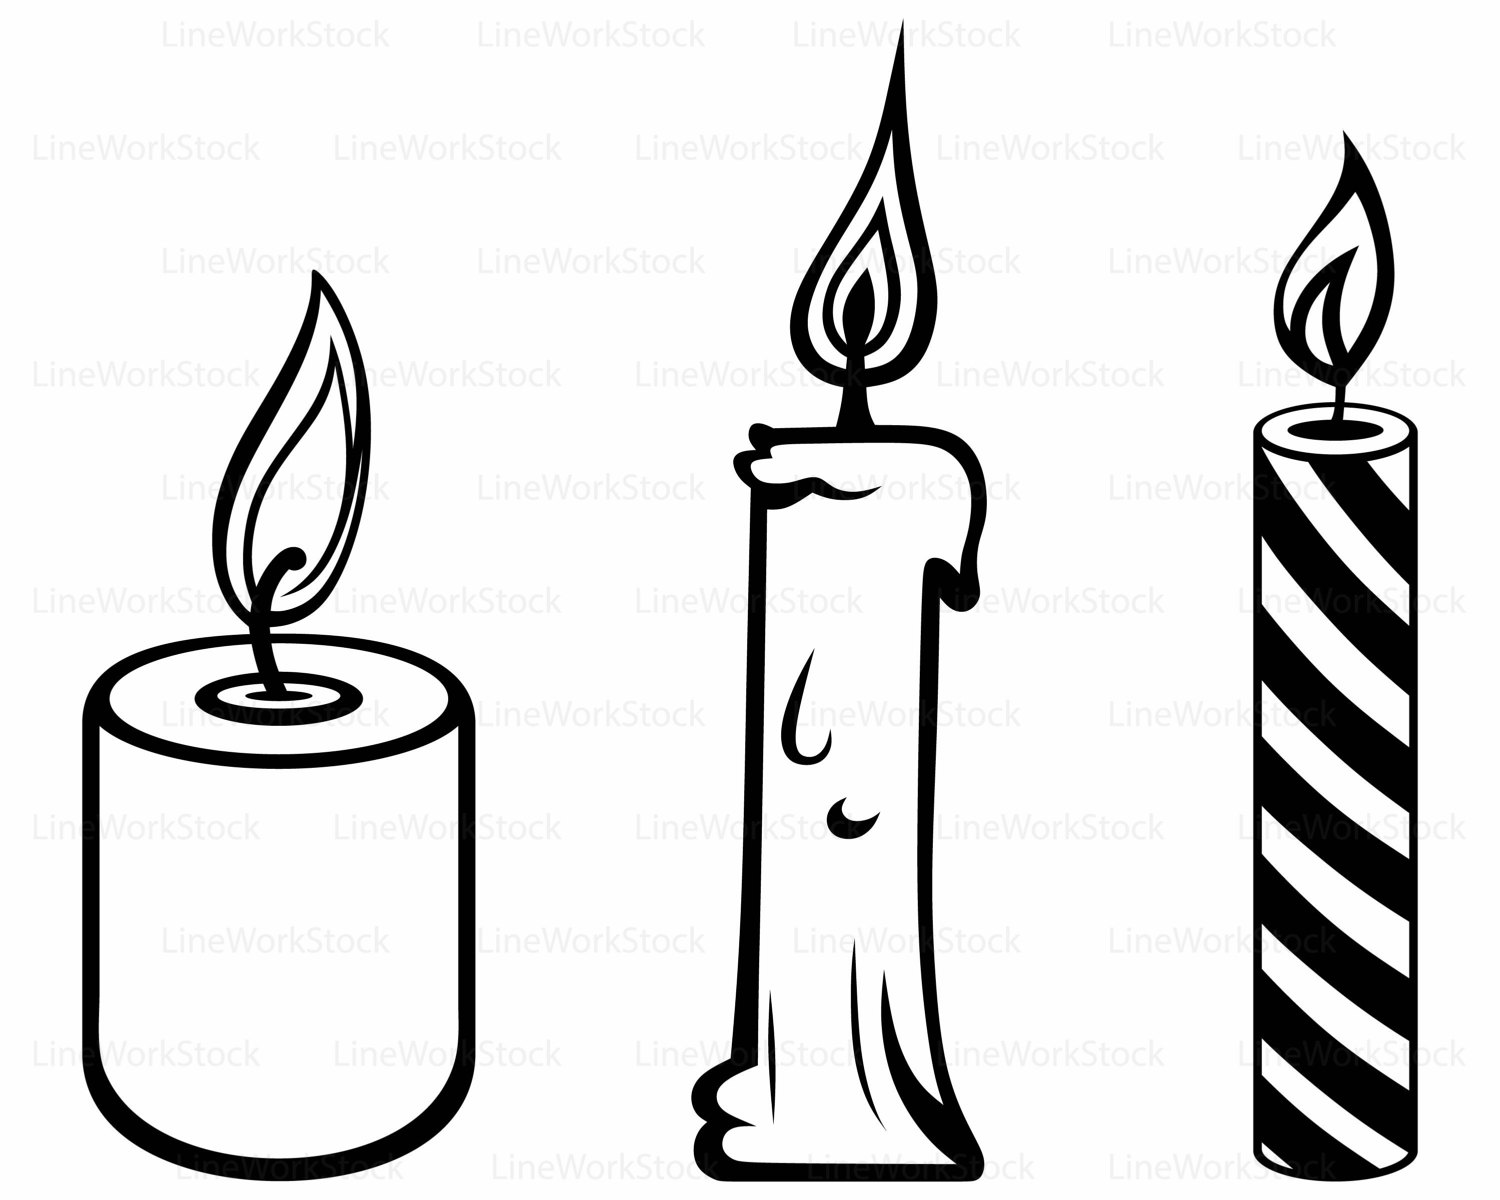 Candle clipart black and white. Great clip art candles